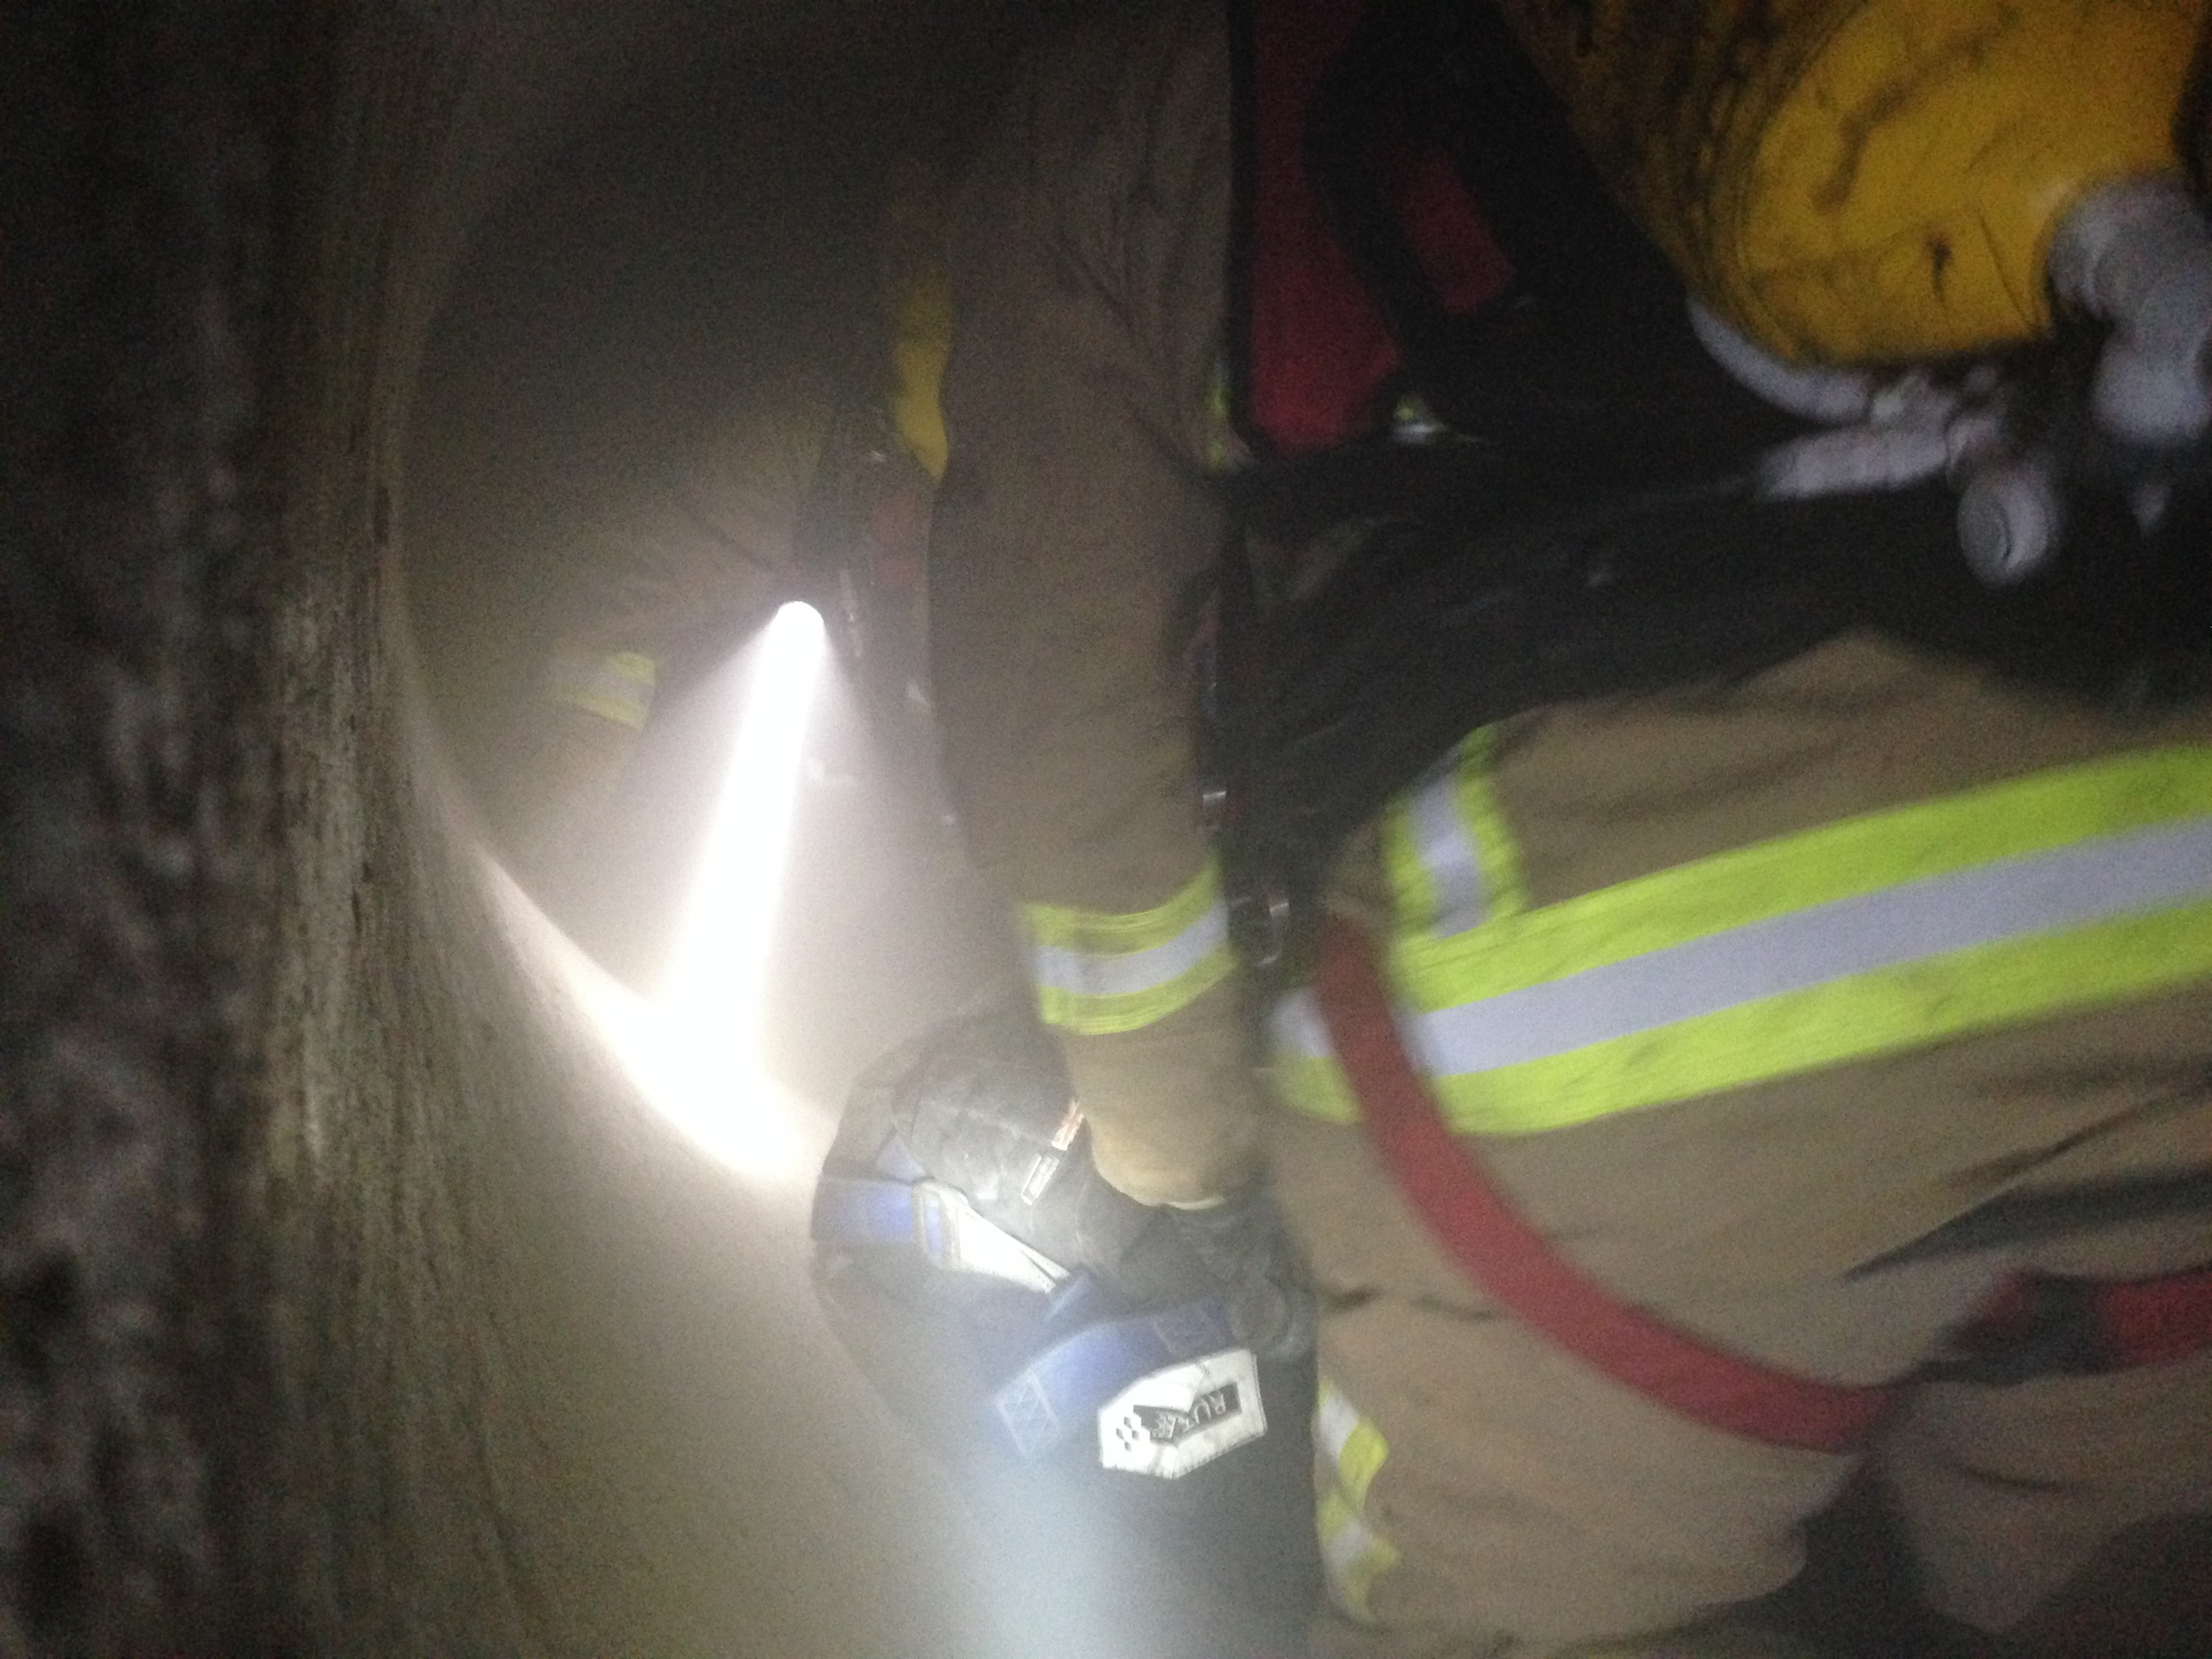 Fire Fighters dragging a casualty (80 kgdummy) through tunnel.